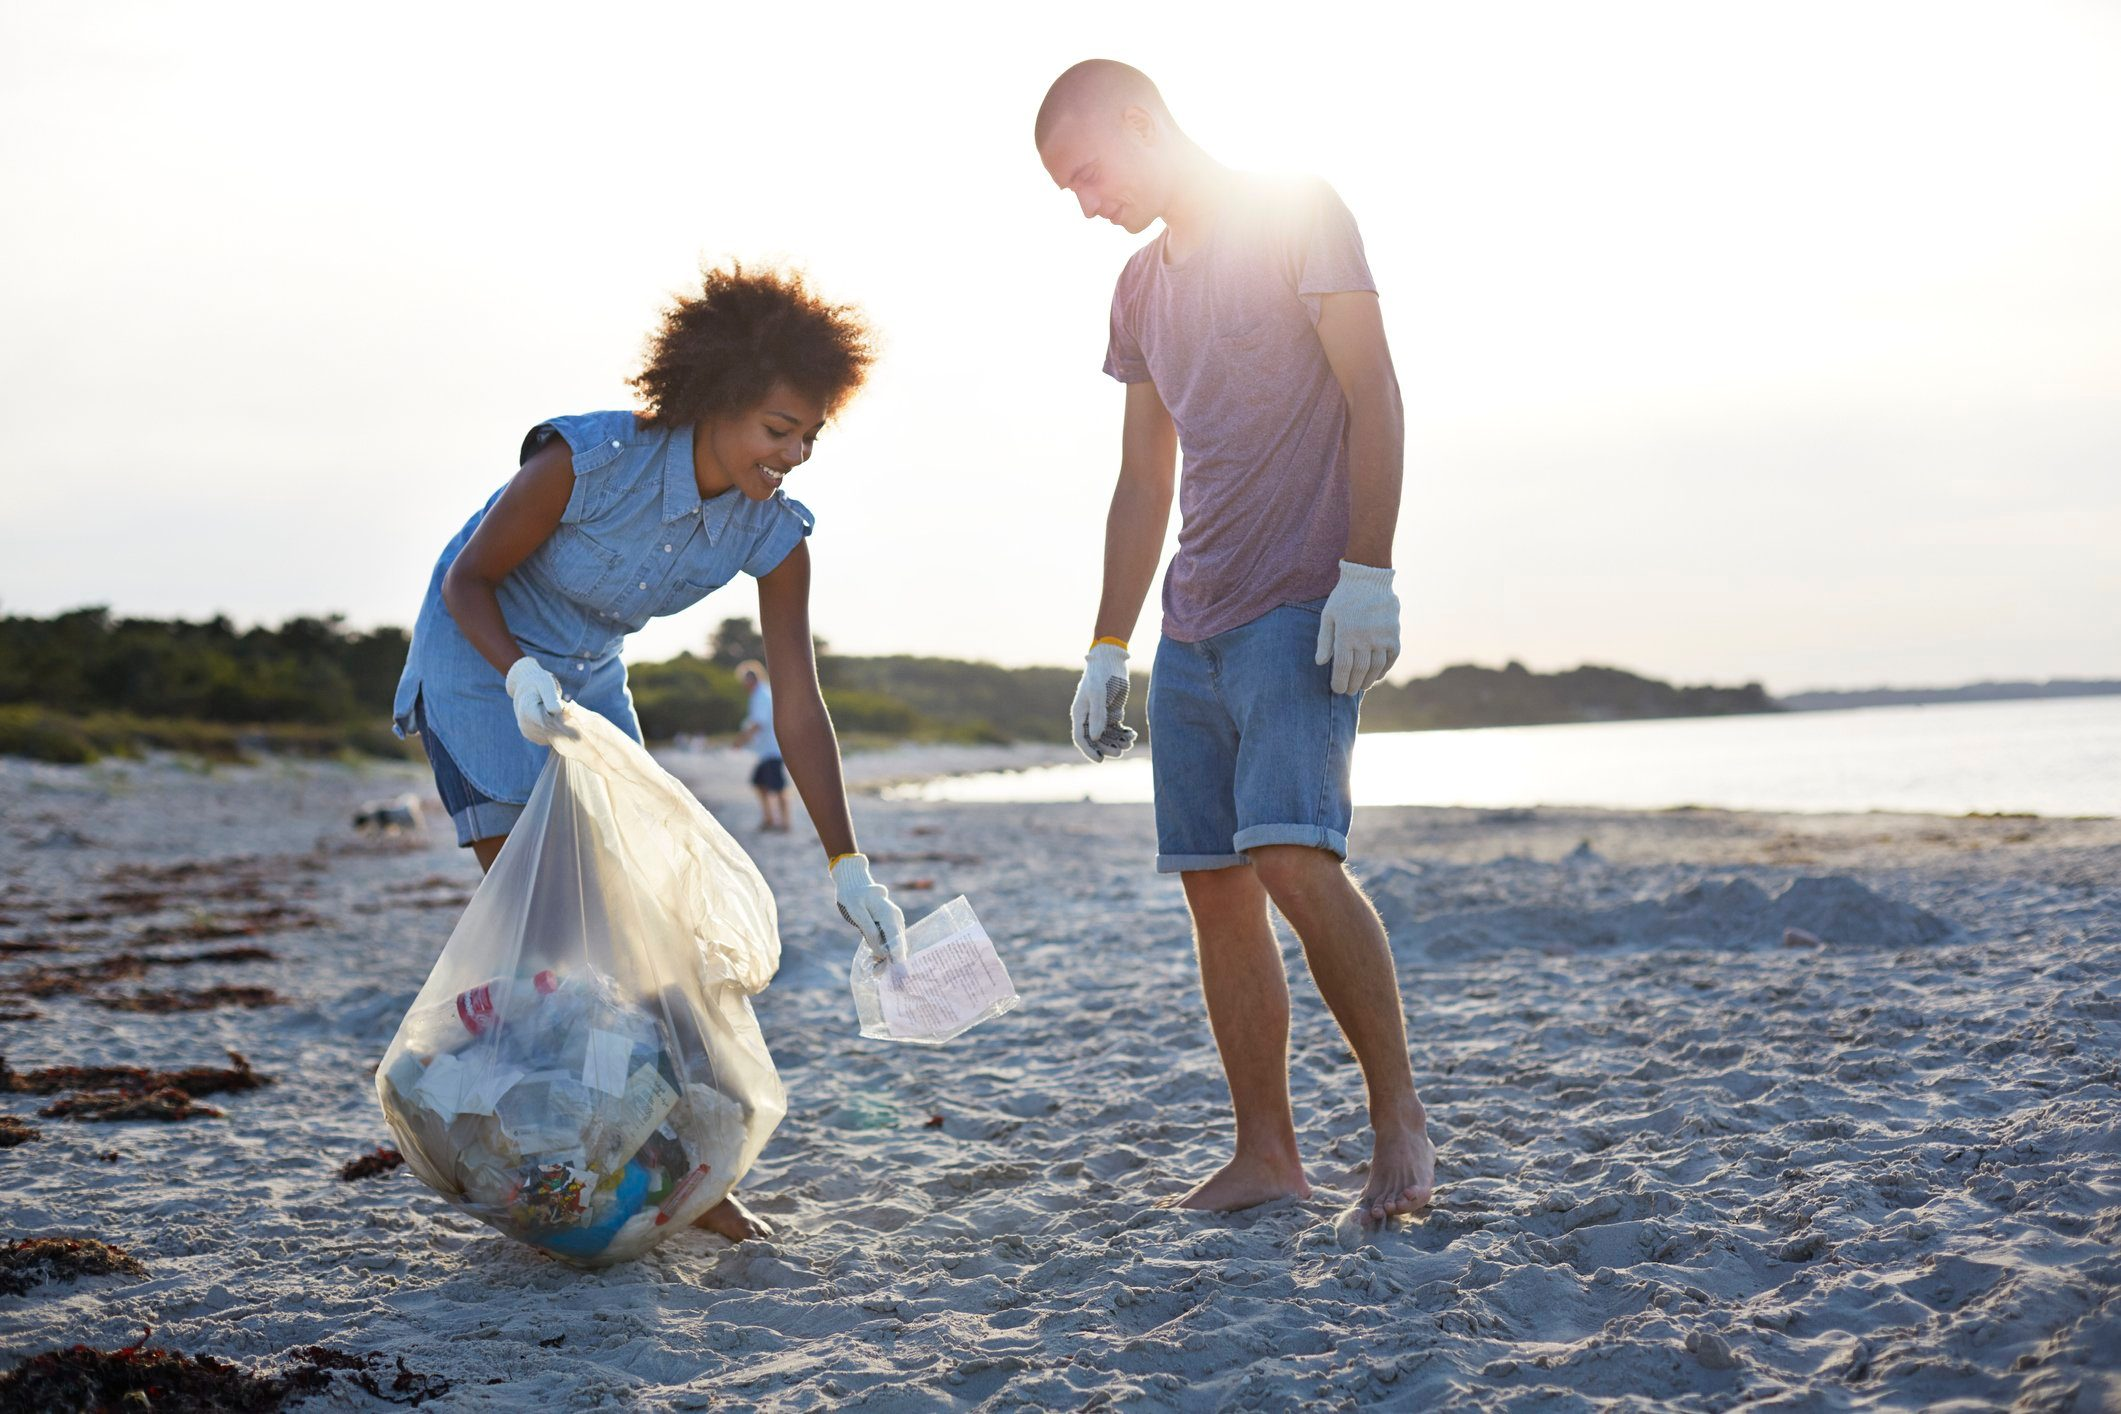 two people picking up litter on beach